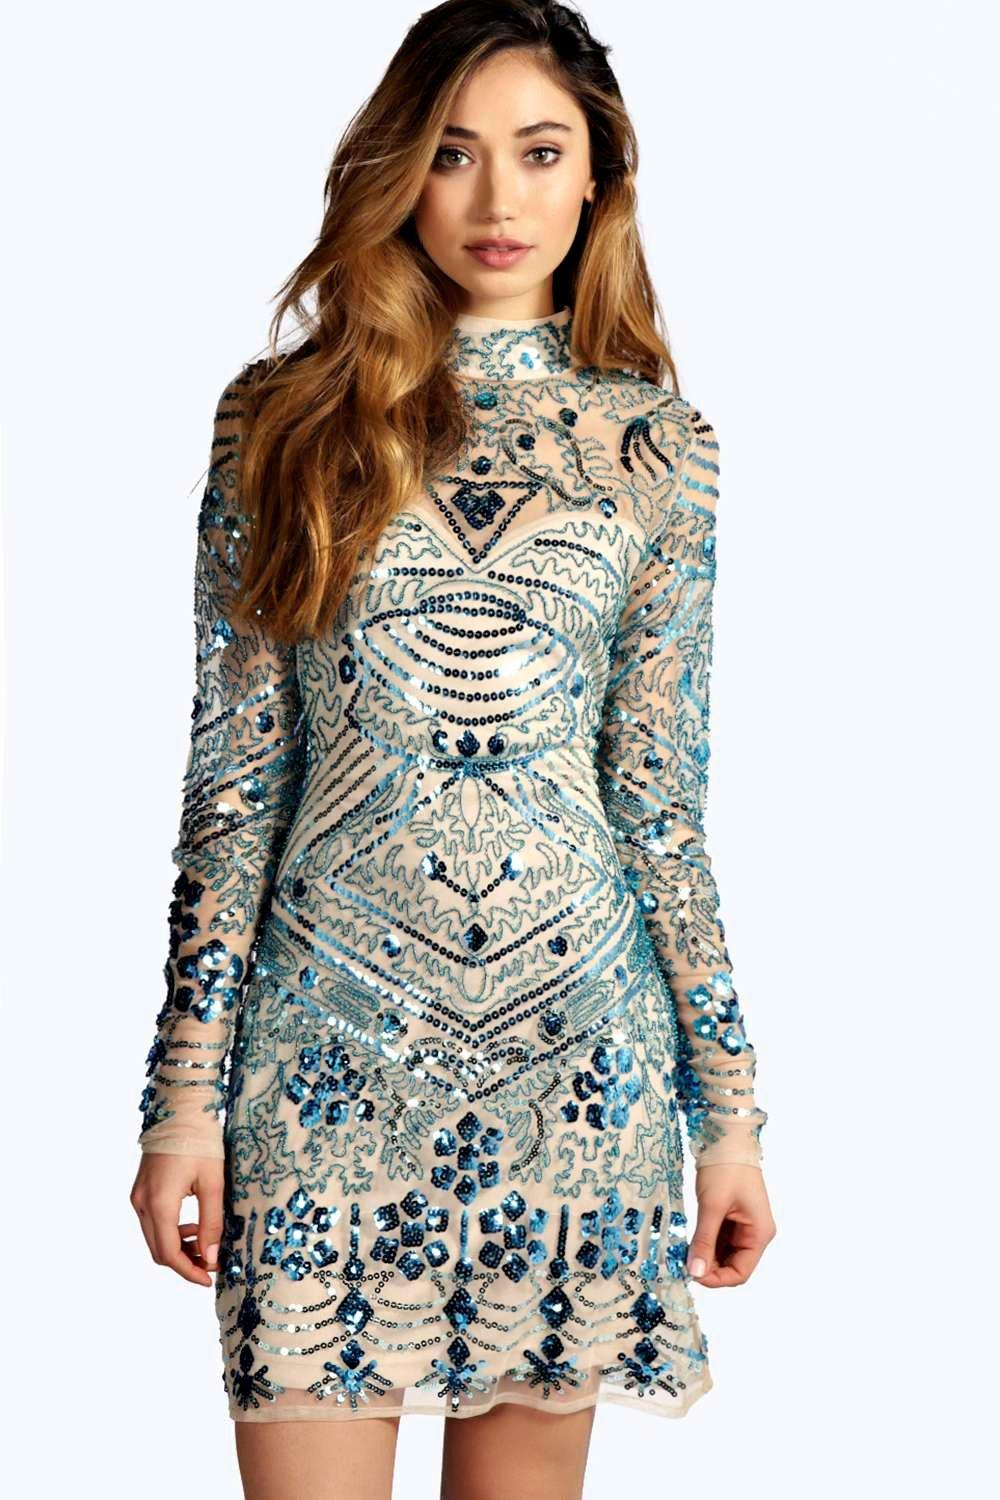 embellished dress